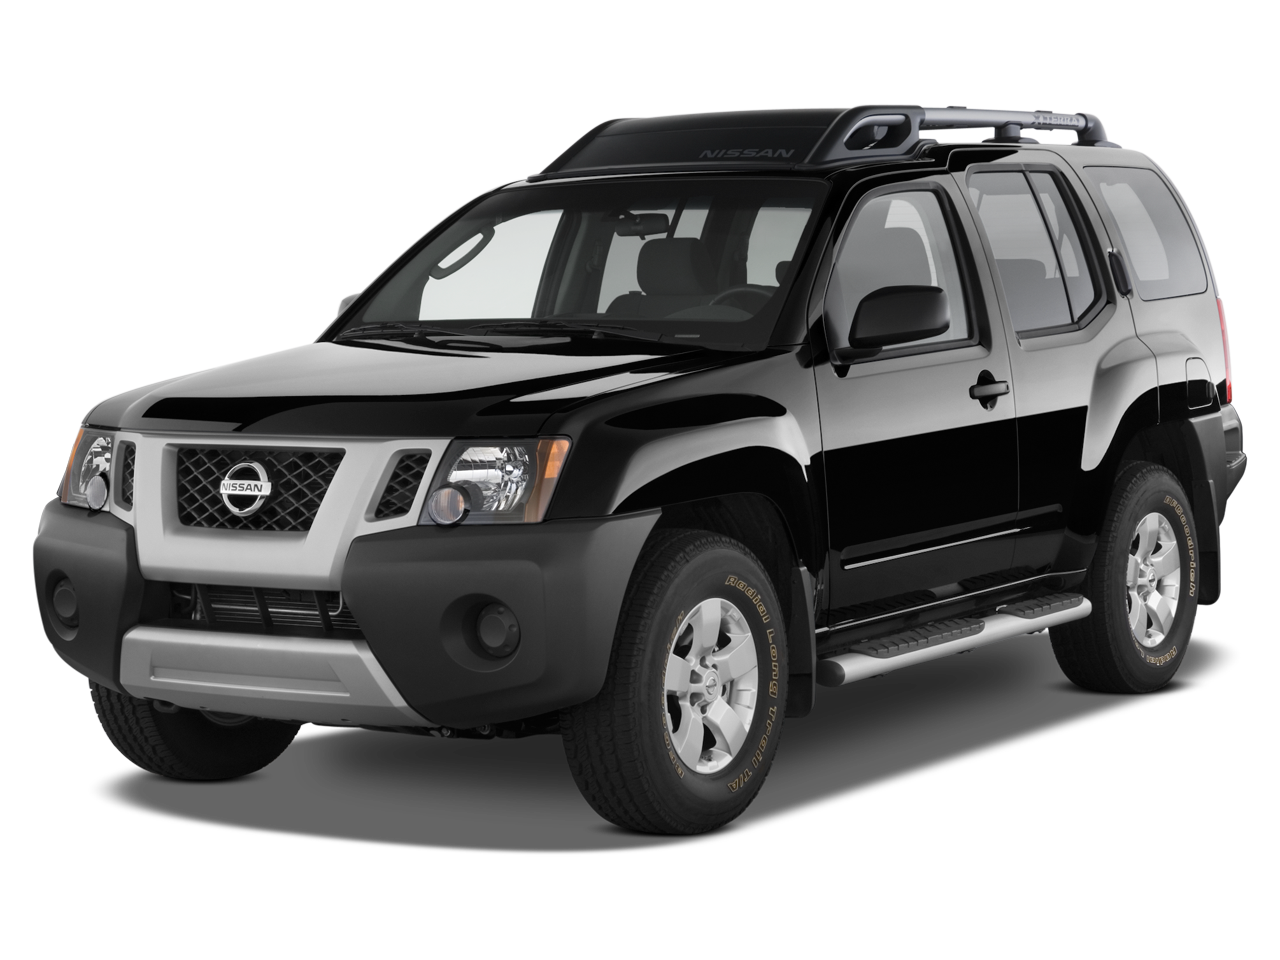 Nissan Frontier Pro 4x >> wsorr.com » off-road contests